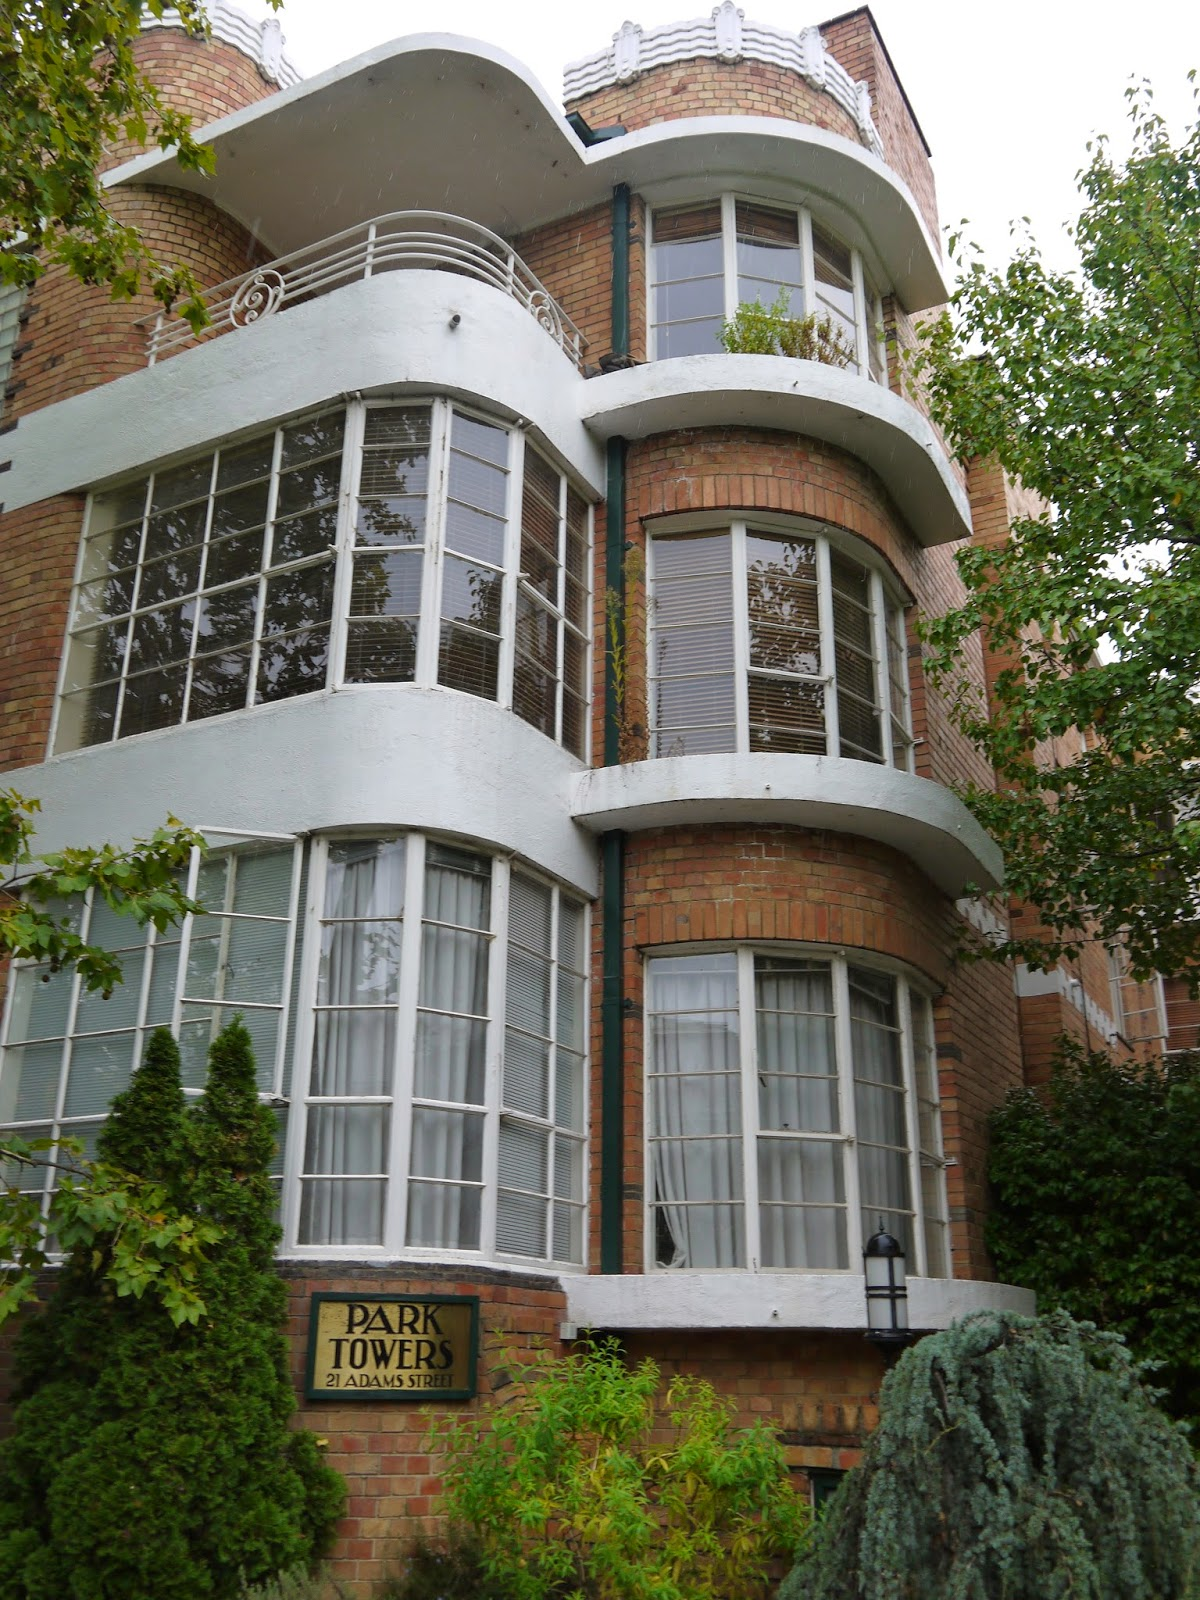 Art Deco Homes Architecture On Pinterest Art Deco House Art Deco And